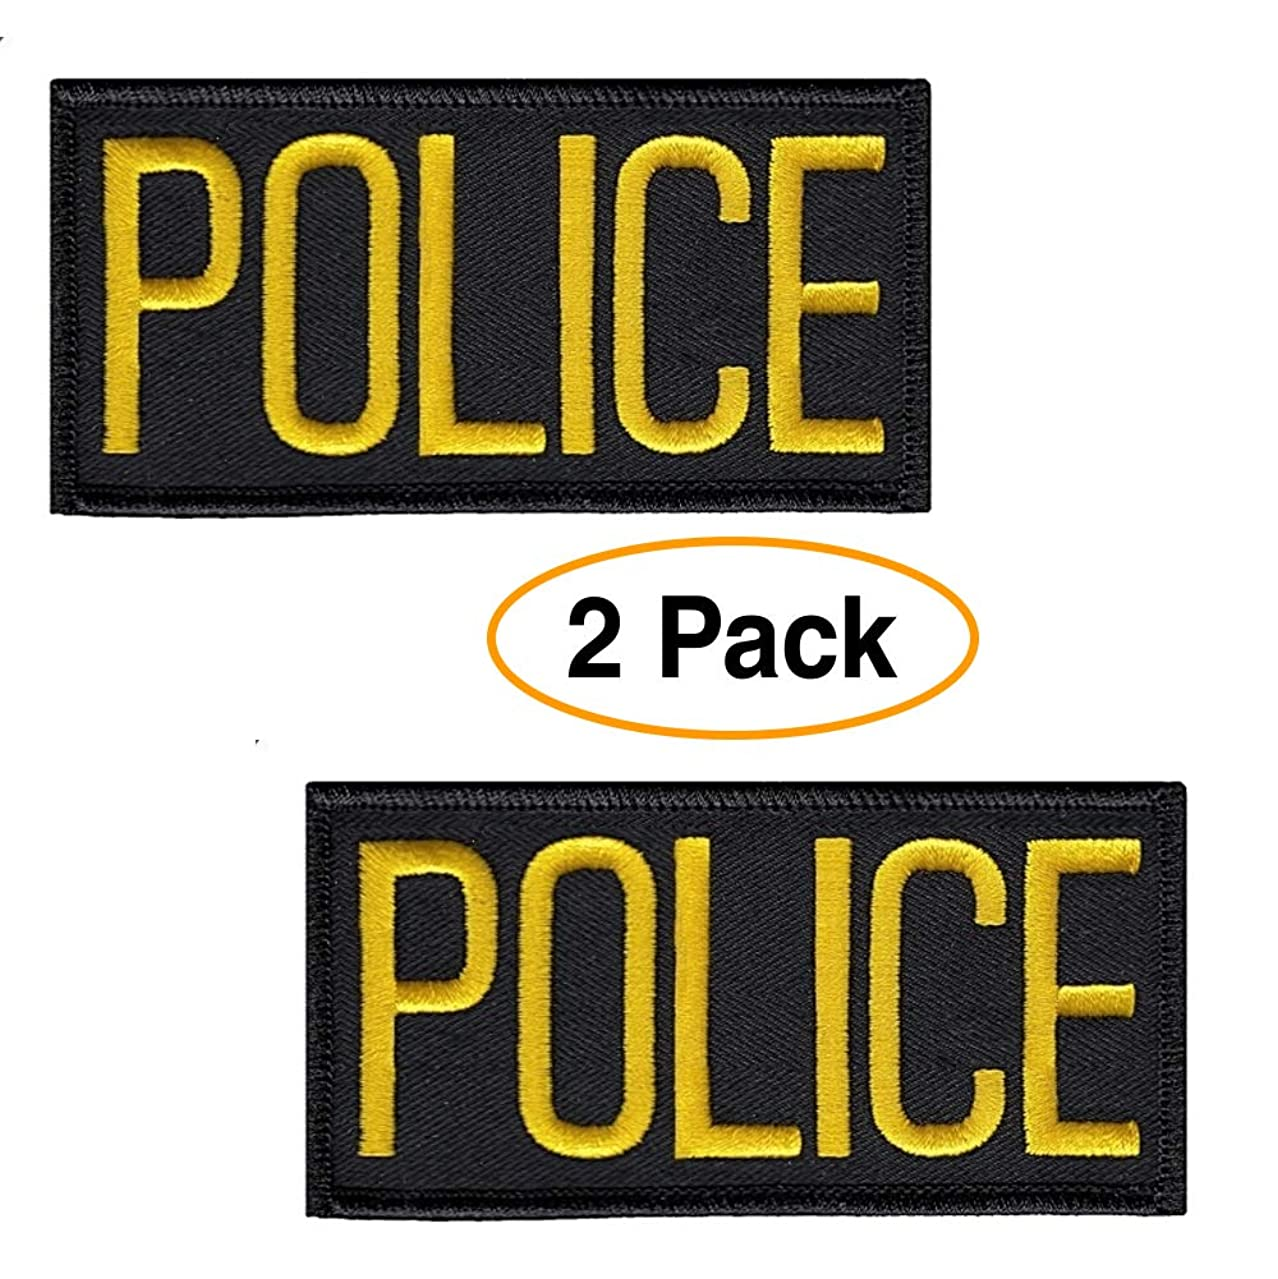 Police Patch Chest or Shoulder (2 Pack) 4 x 2 Inches Embroidered Gold/Yellow on Black